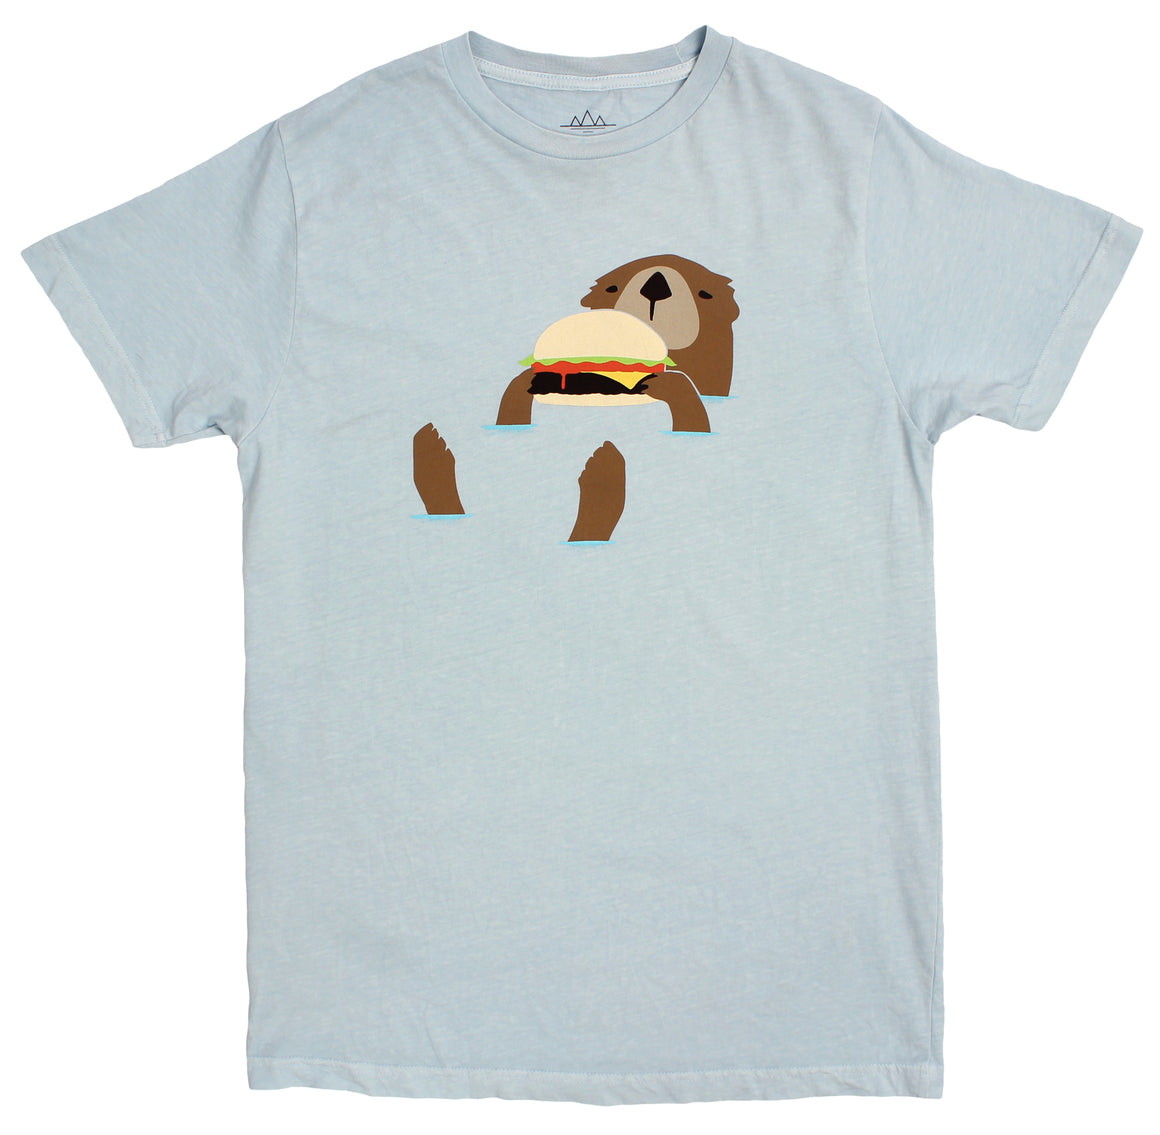 Otter eating a hamburger graphic tee by altru apparel